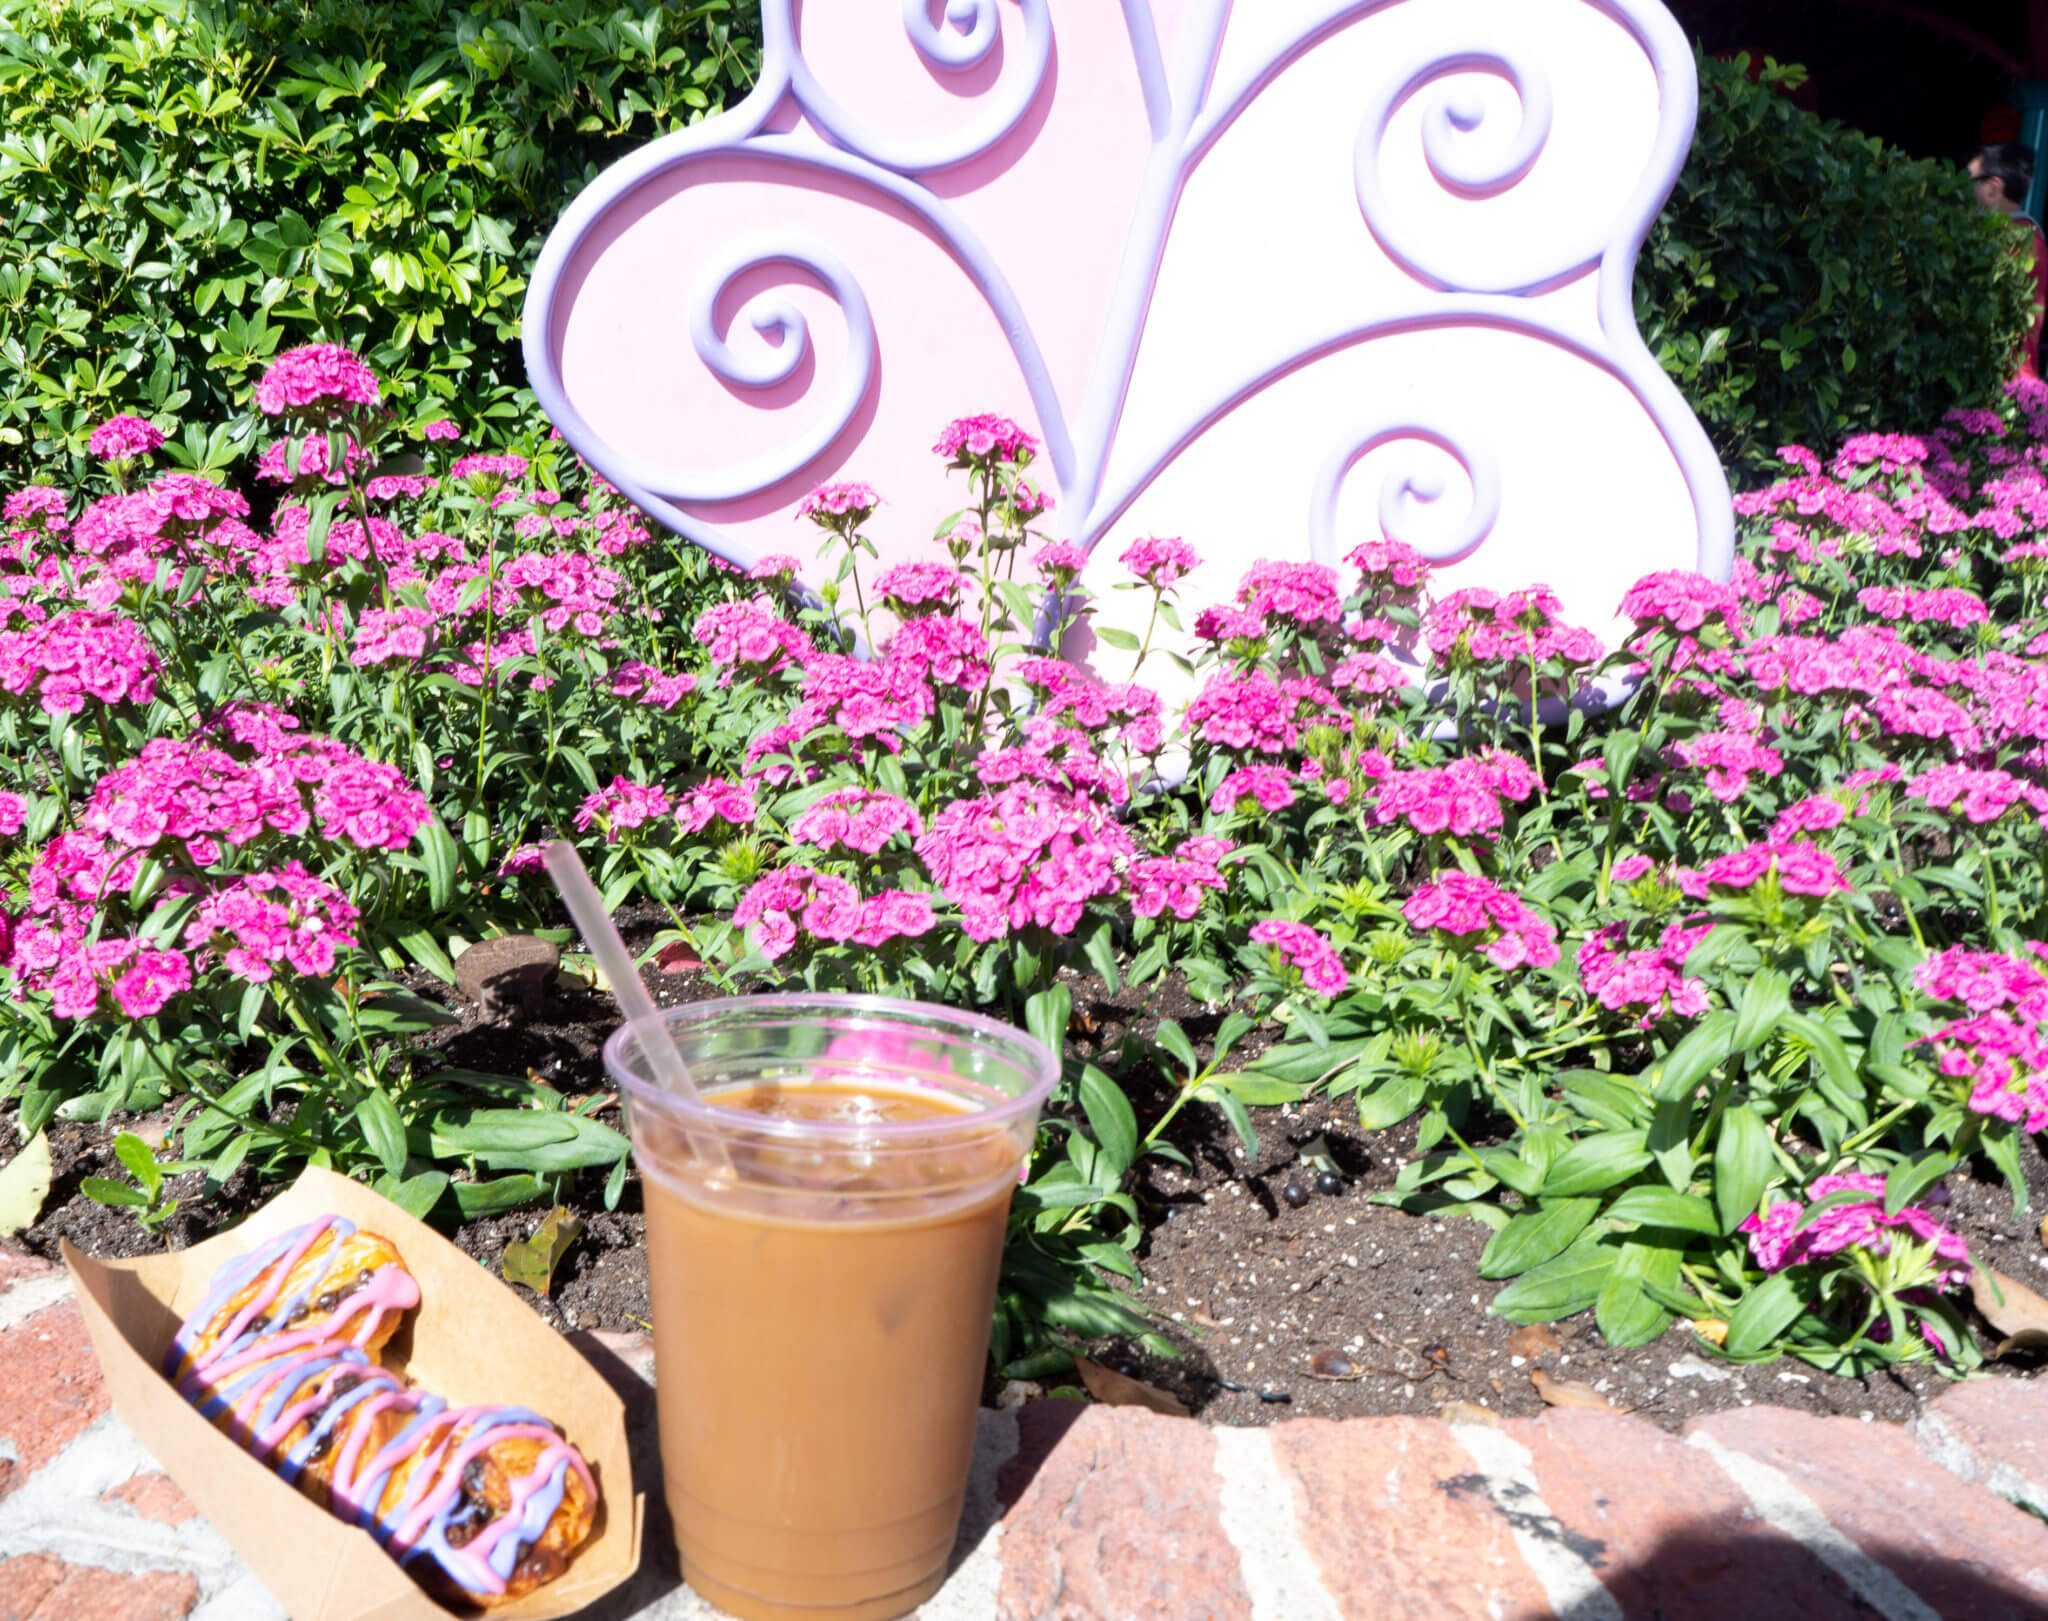 Cheshire Cat Tail Pastry and Cold Brew Coffee from Cheshire Cafe in Disney World's Magic Kingdom